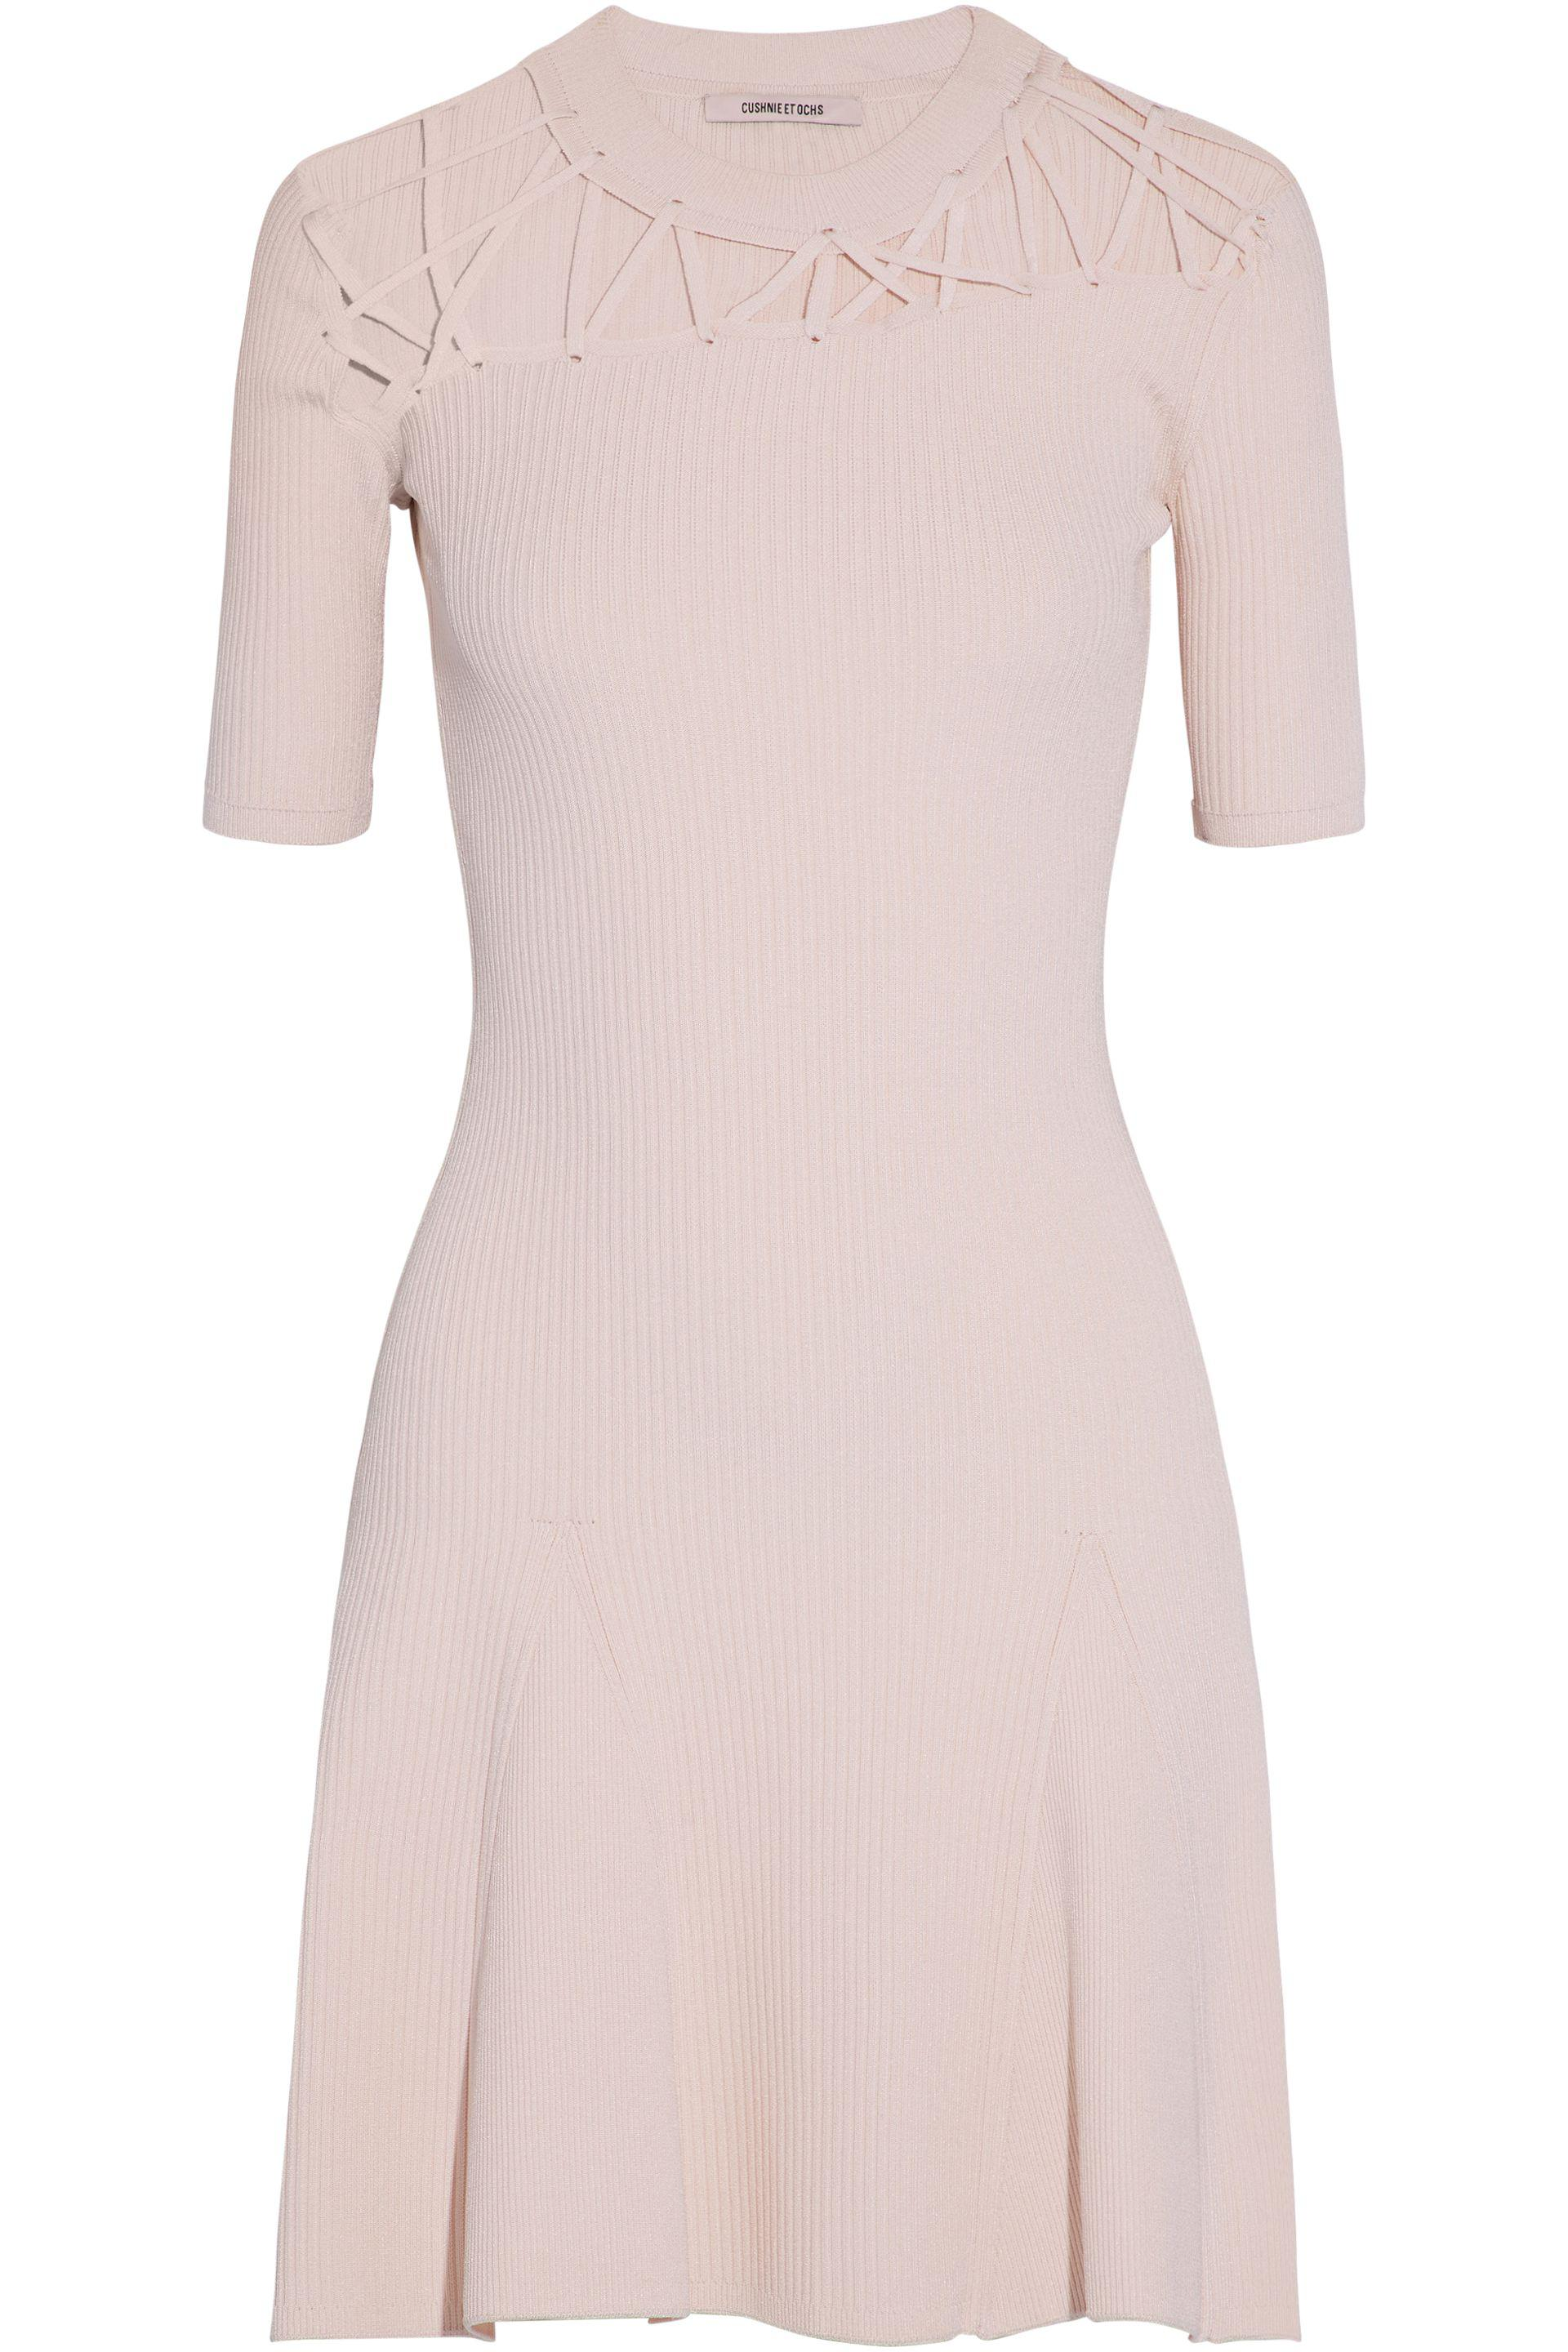 Cushnie Et Ochs Woman Cutout Ribbed-knit Midi Dress White Size M Cushnie et Ochs WRfqk